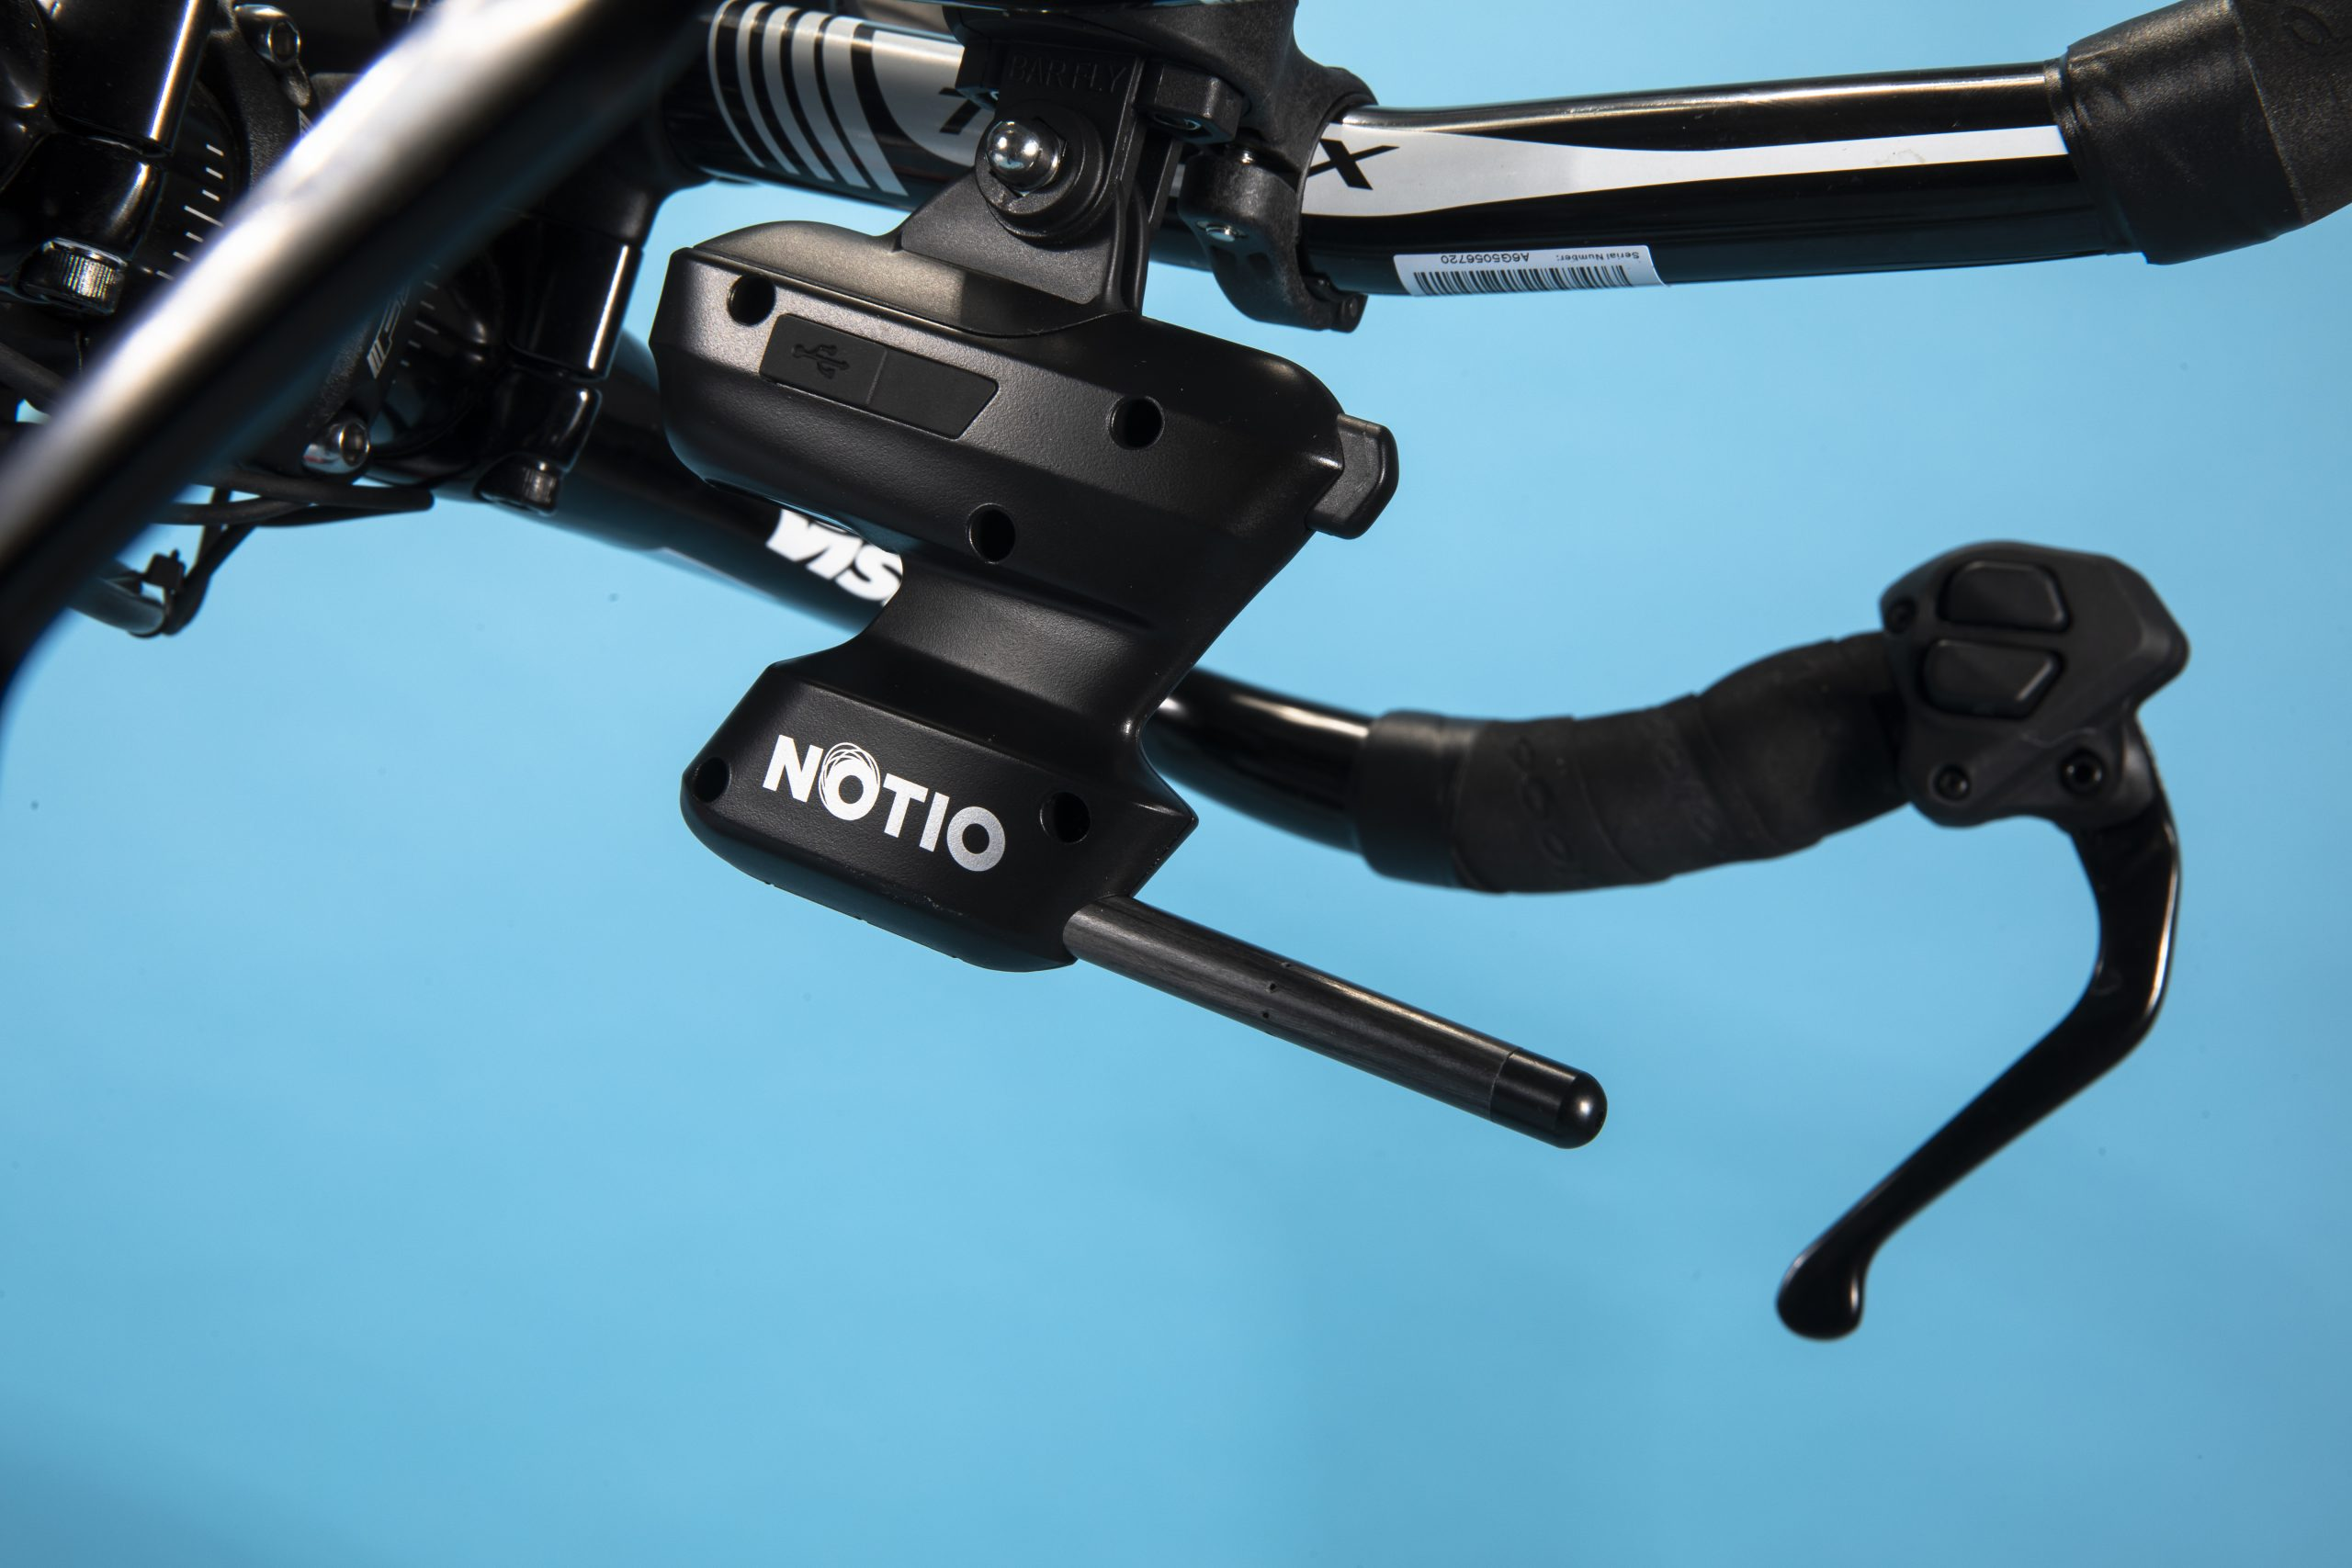 February's Tech of the Month: Notio CdA tool and a Cervélo S3 - Cycling Weekly